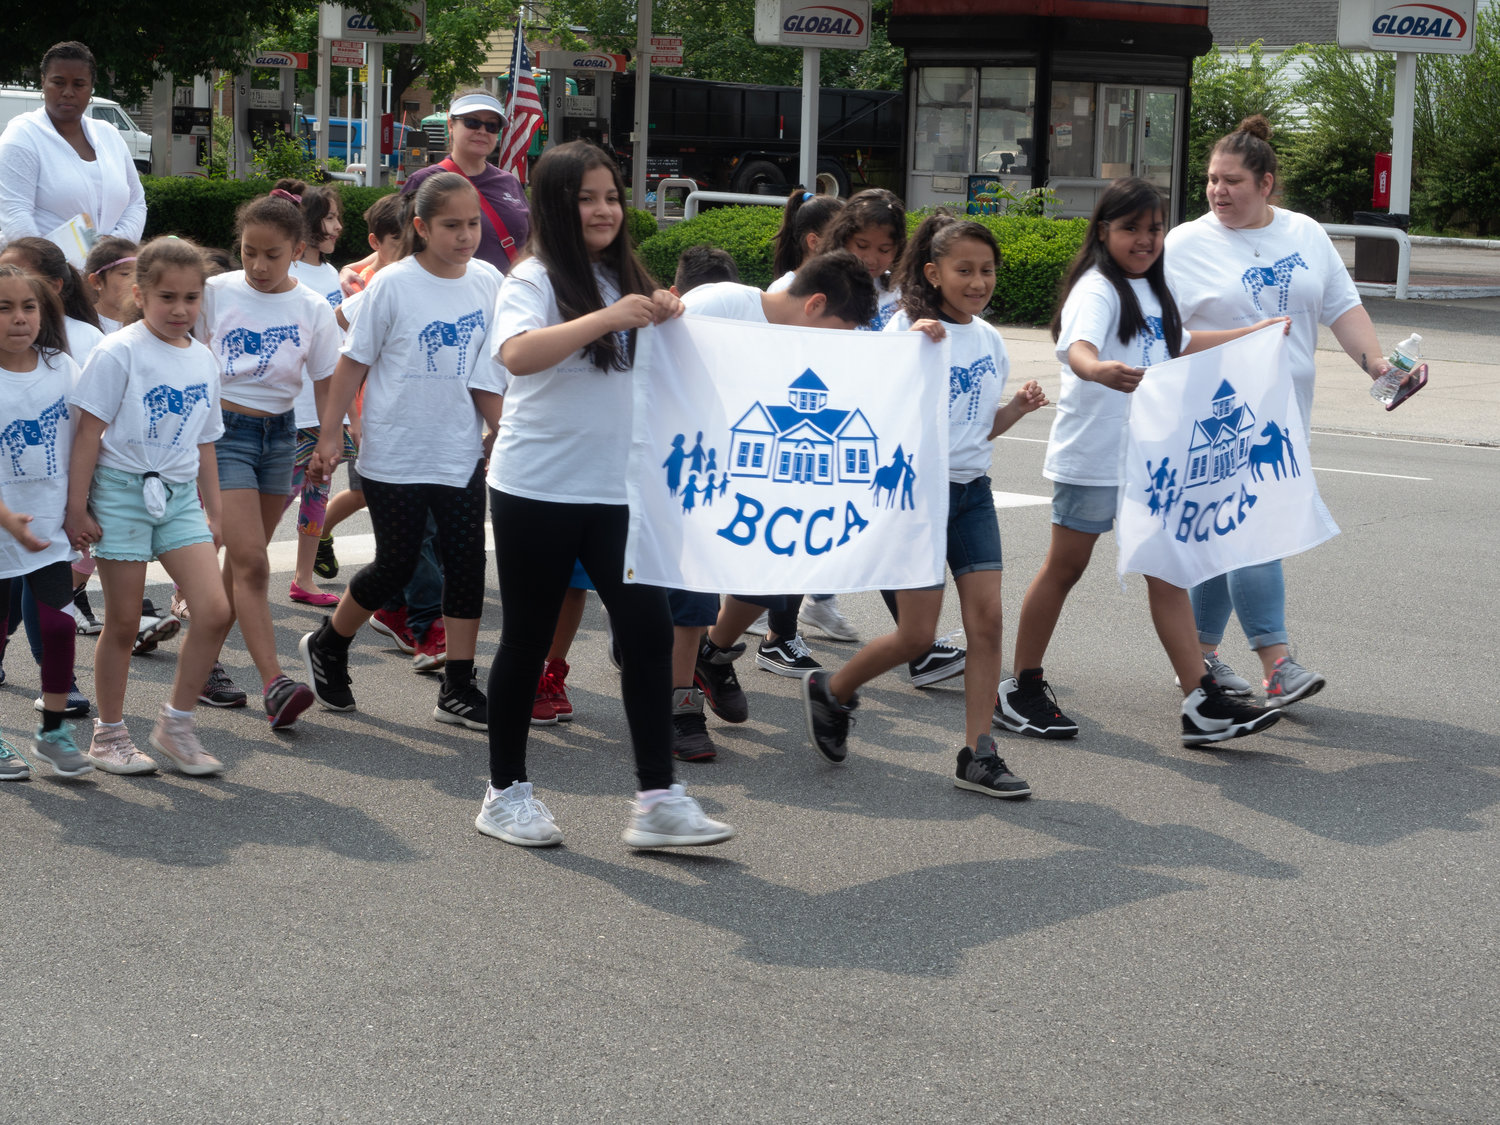 Children from the Belmont Child Care Association walked down Hempstead Turnpike to celebrate the 12th annual Elmont/Belmont Stakes Parade on June 1.